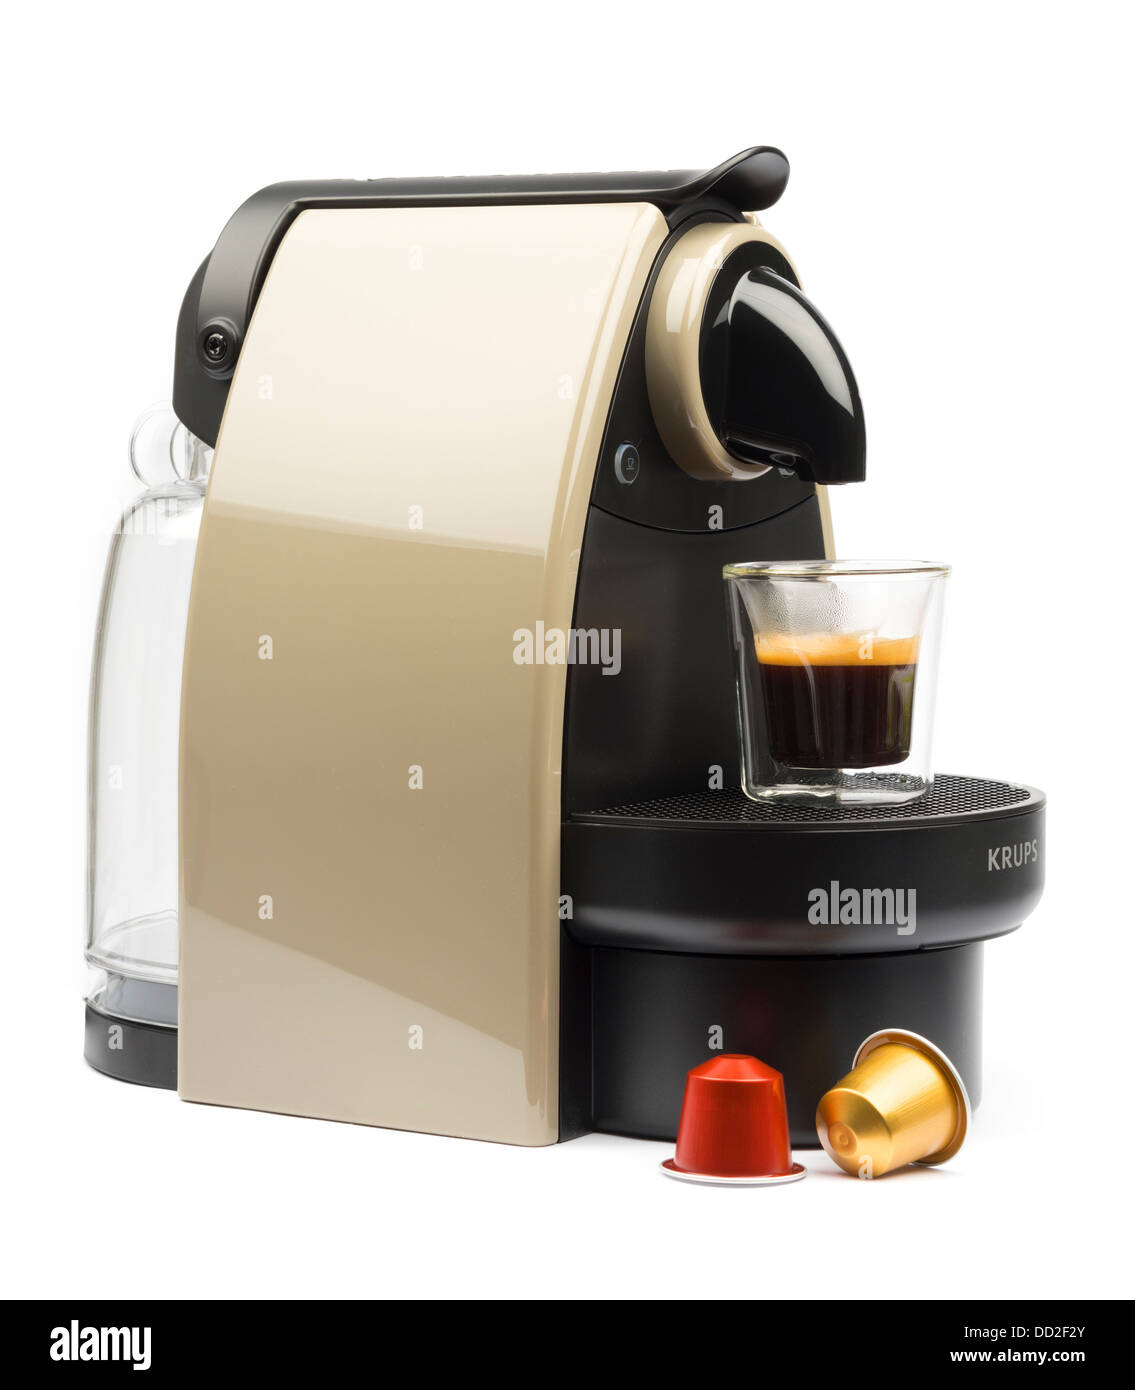 krups essenza auto xn 2140 earth nespresso coffee machine. Black Bedroom Furniture Sets. Home Design Ideas